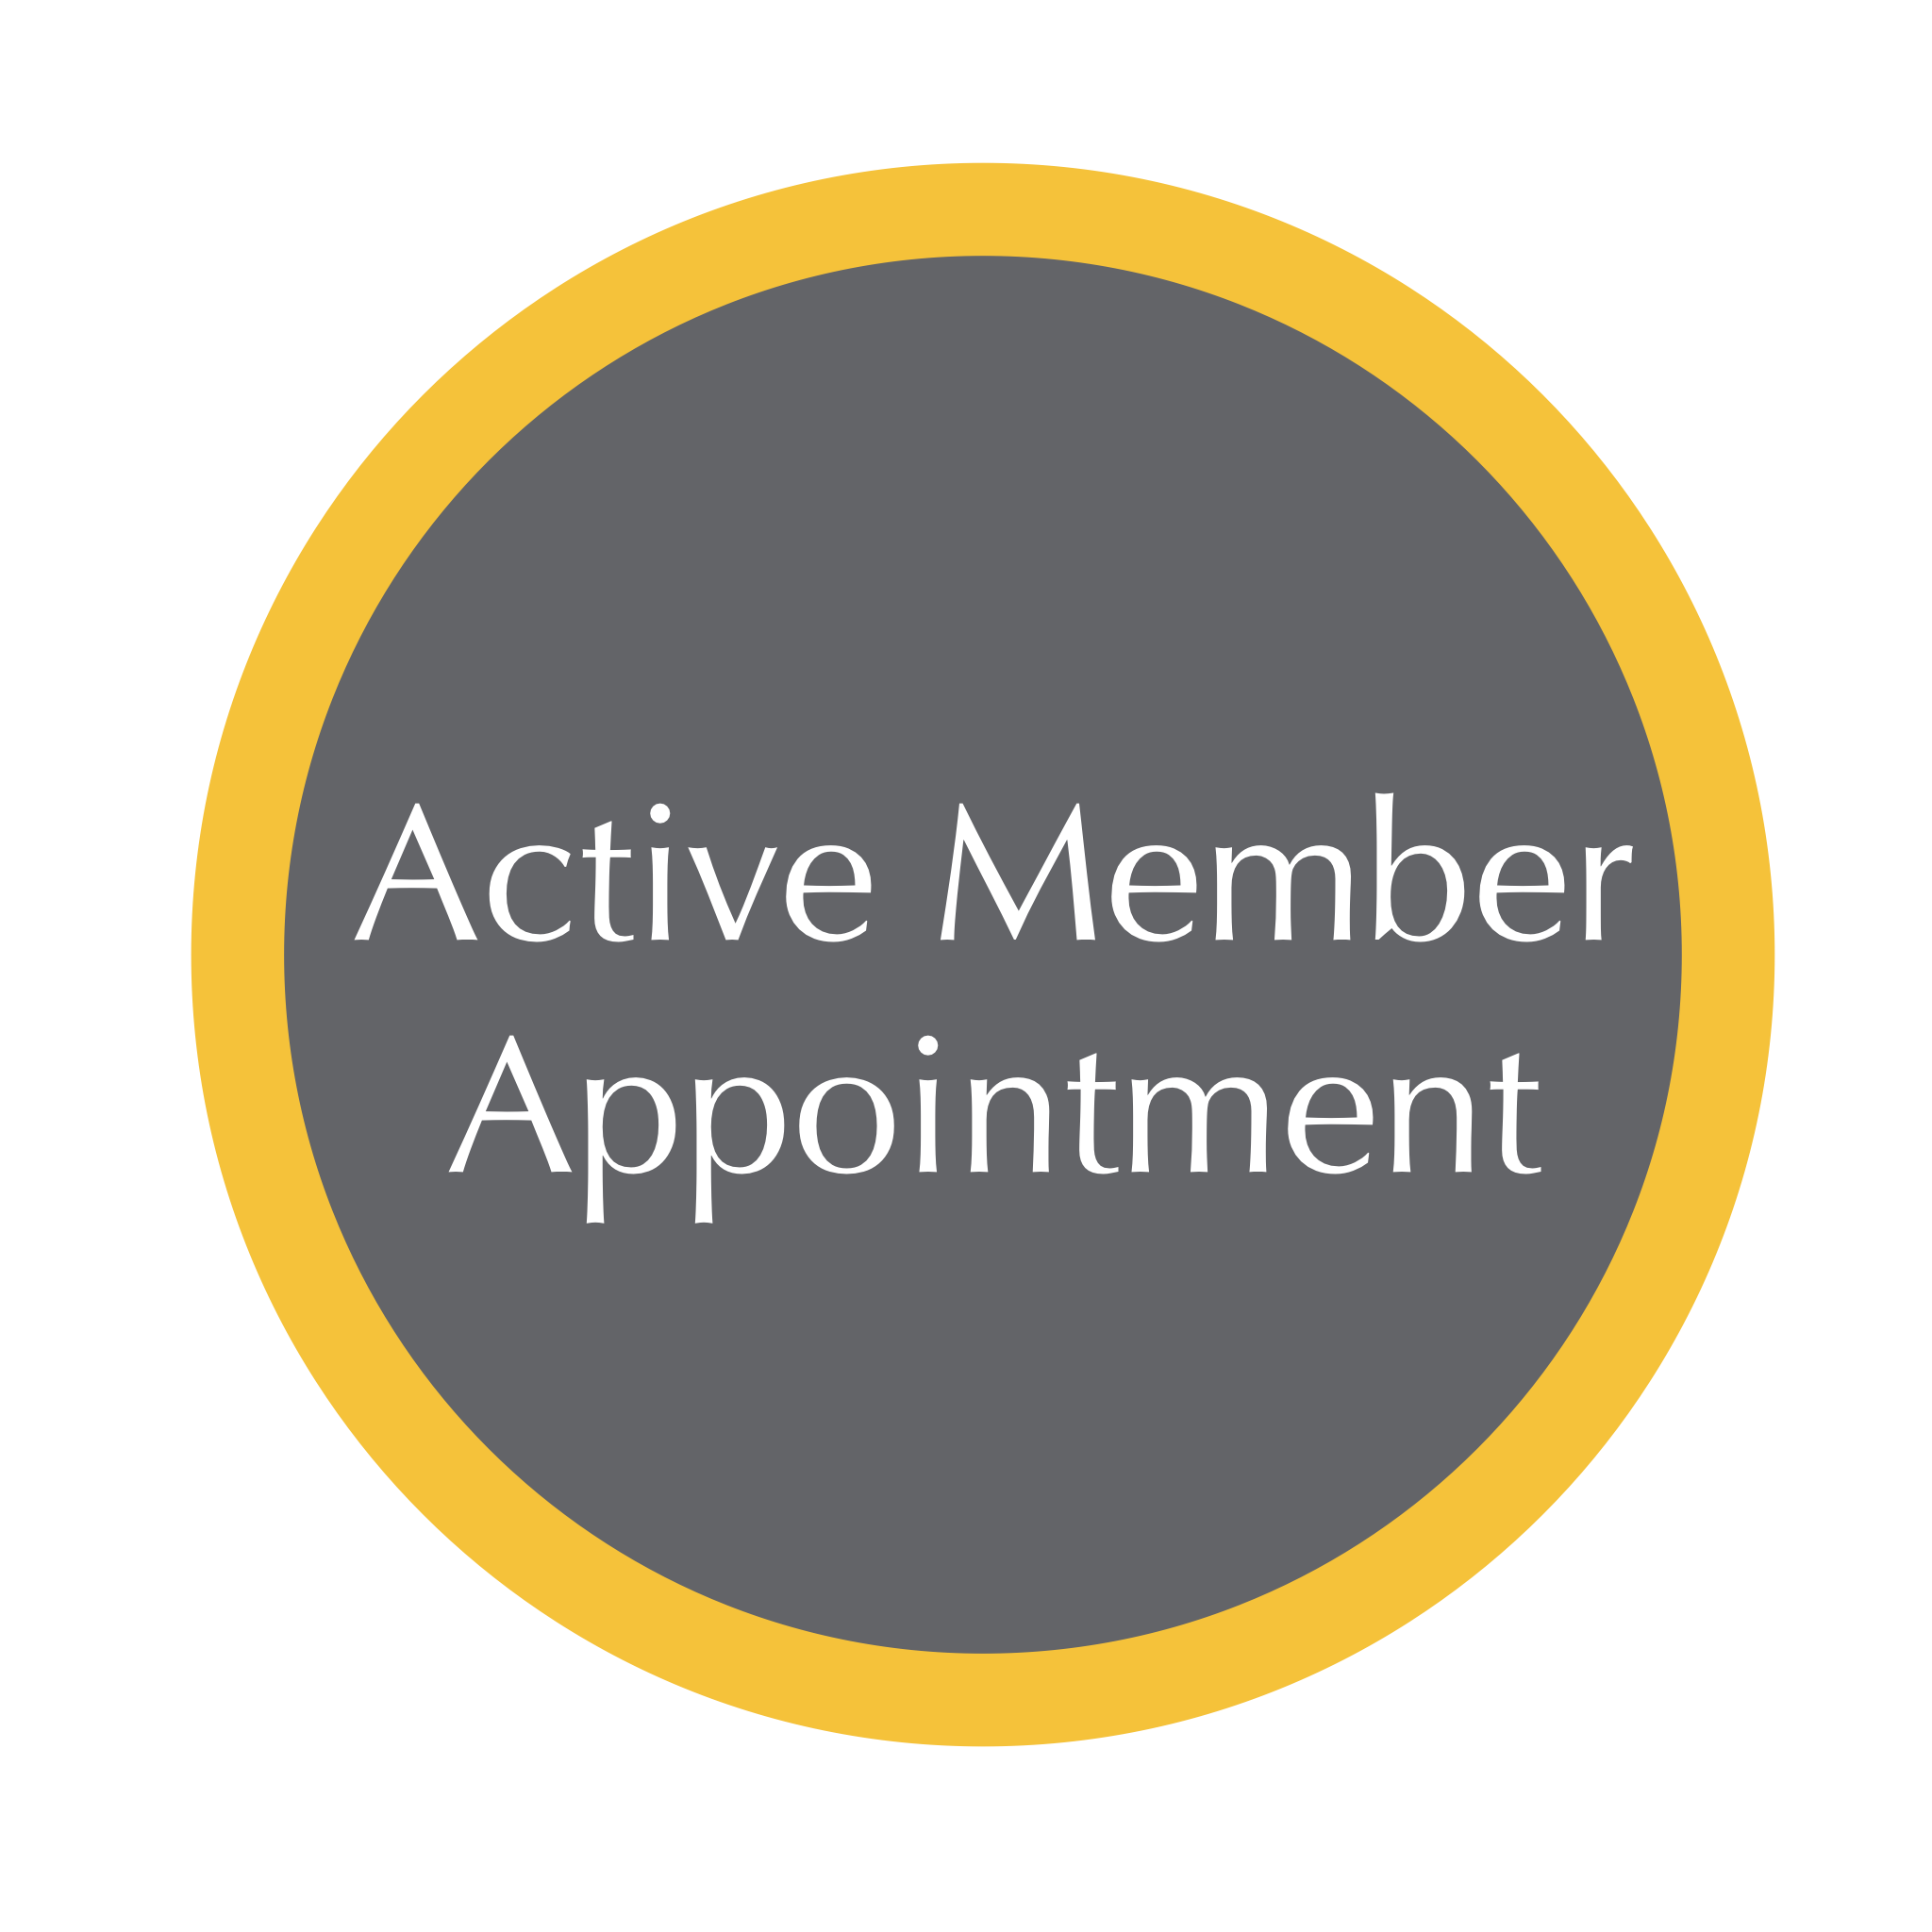 Active Member Appointment